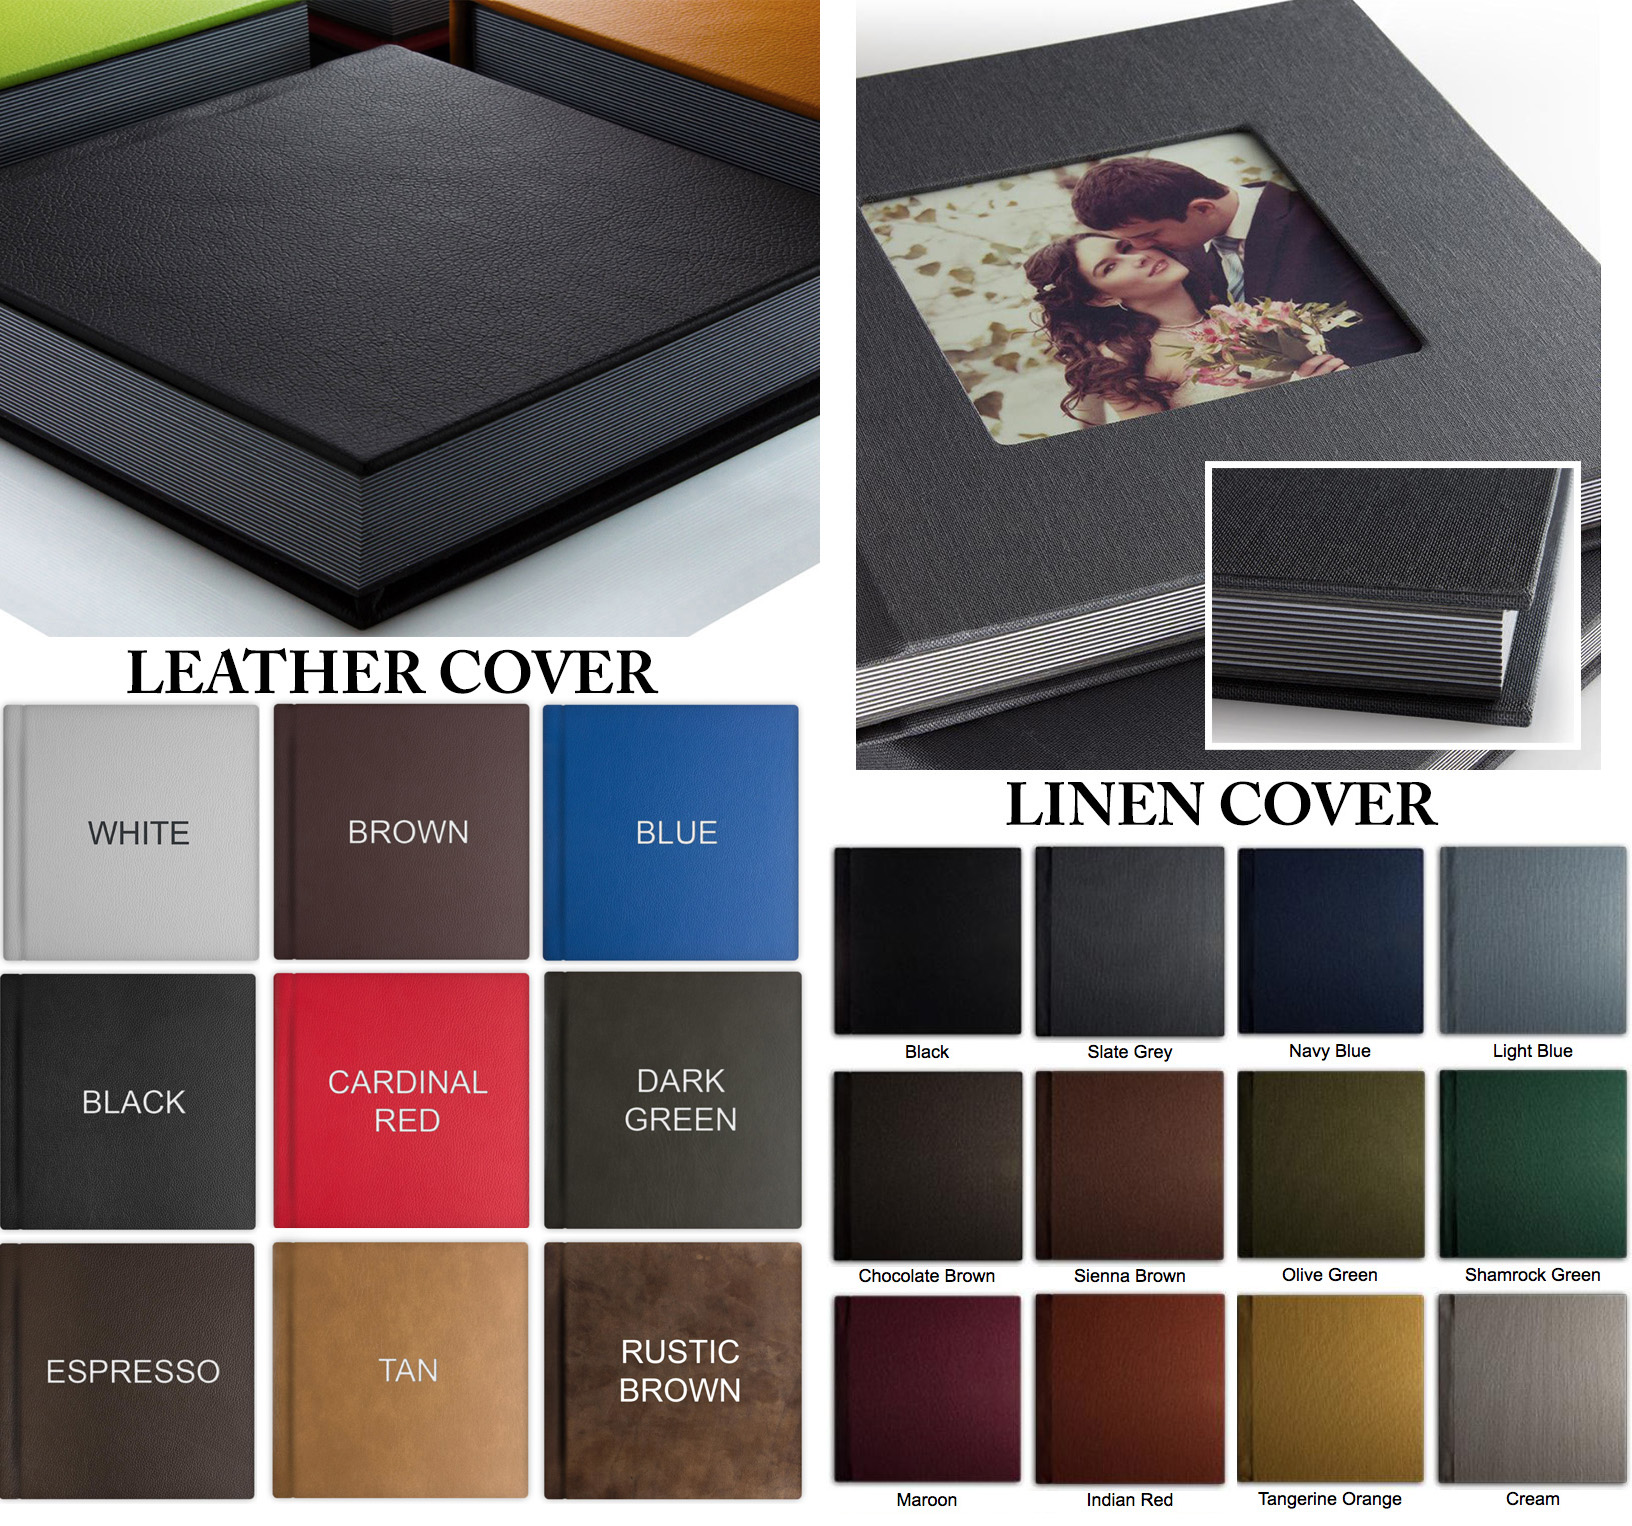 Album Cover Options: Choose between leather or linen. (Optional: cameo window seen in Linen Cover above)